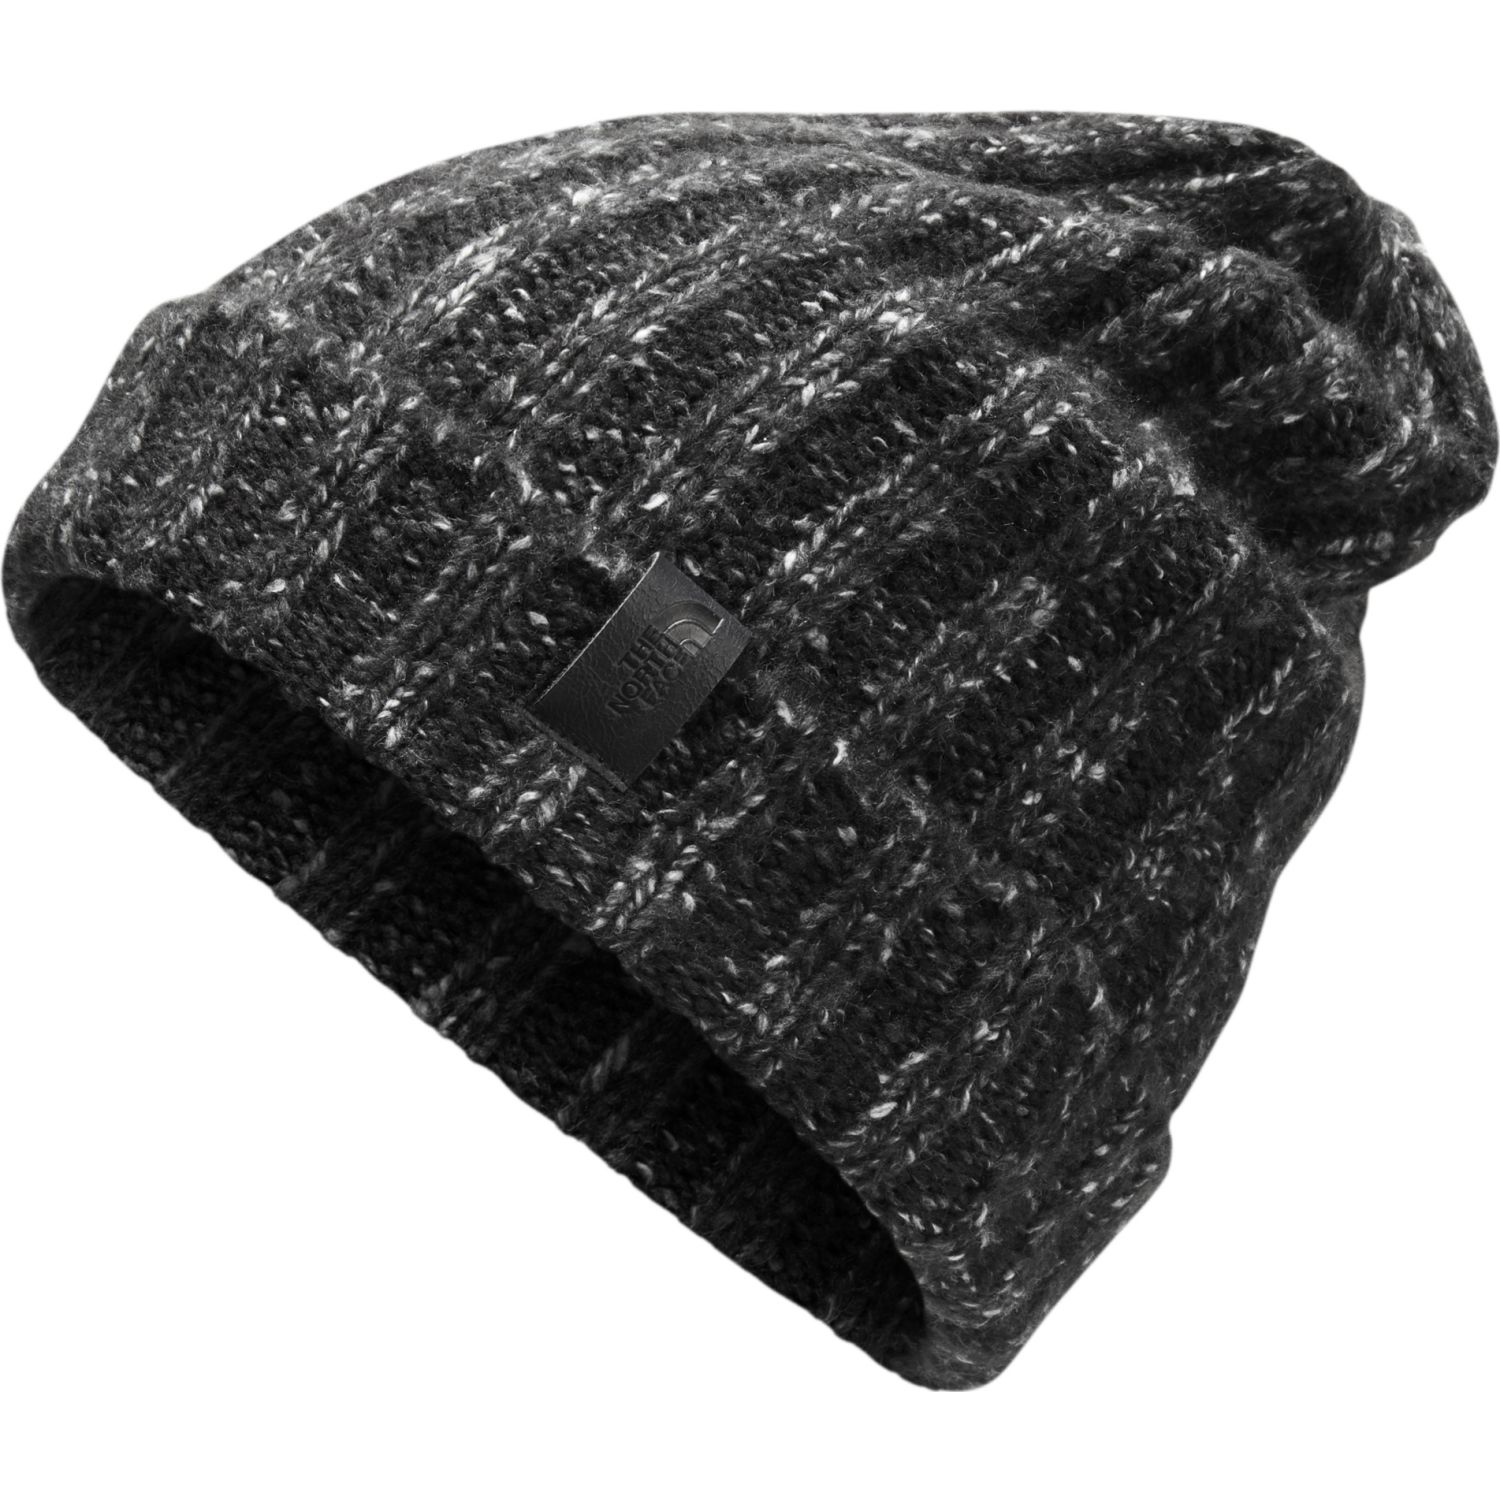 The North Face Chunky Rib Beanie Gris Gorros de Baseball